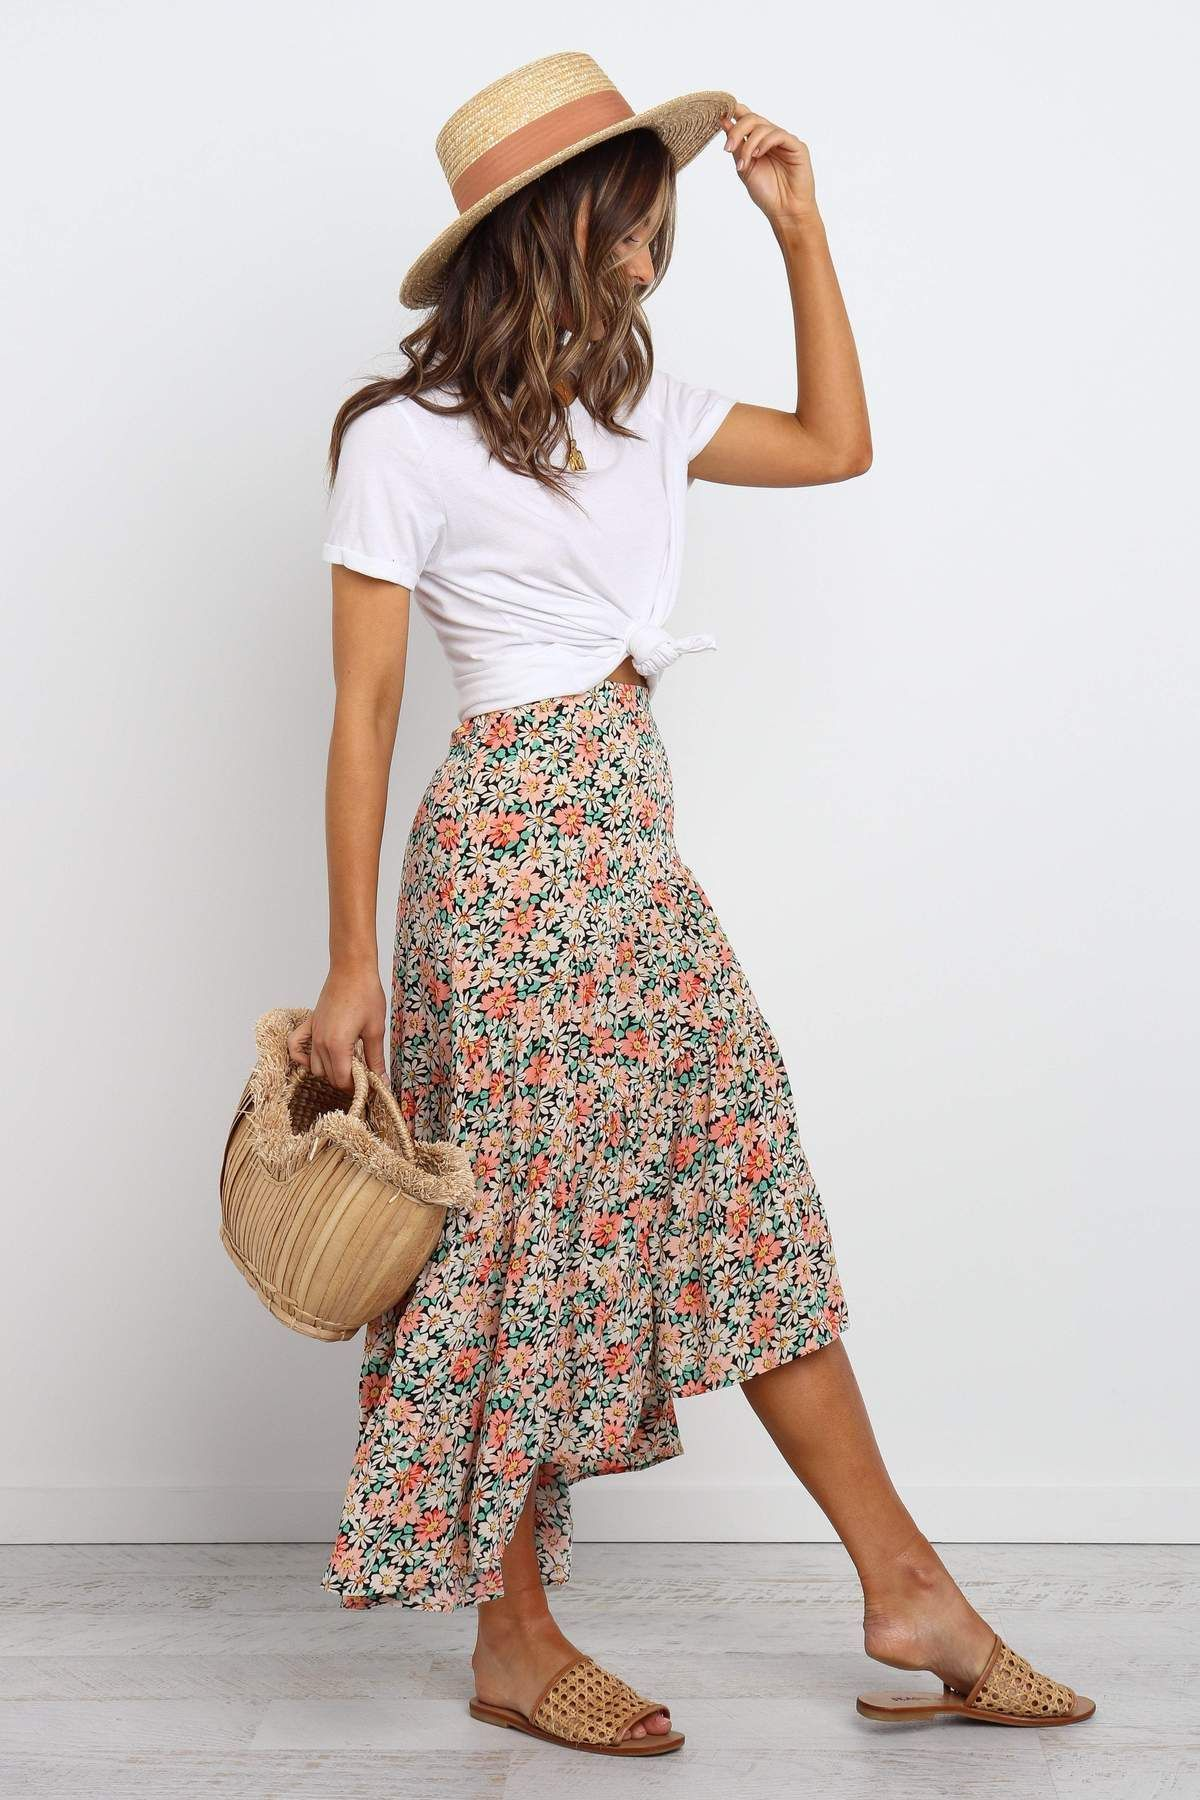 Hopkins Skirt - Multi - Petal & Pup USA